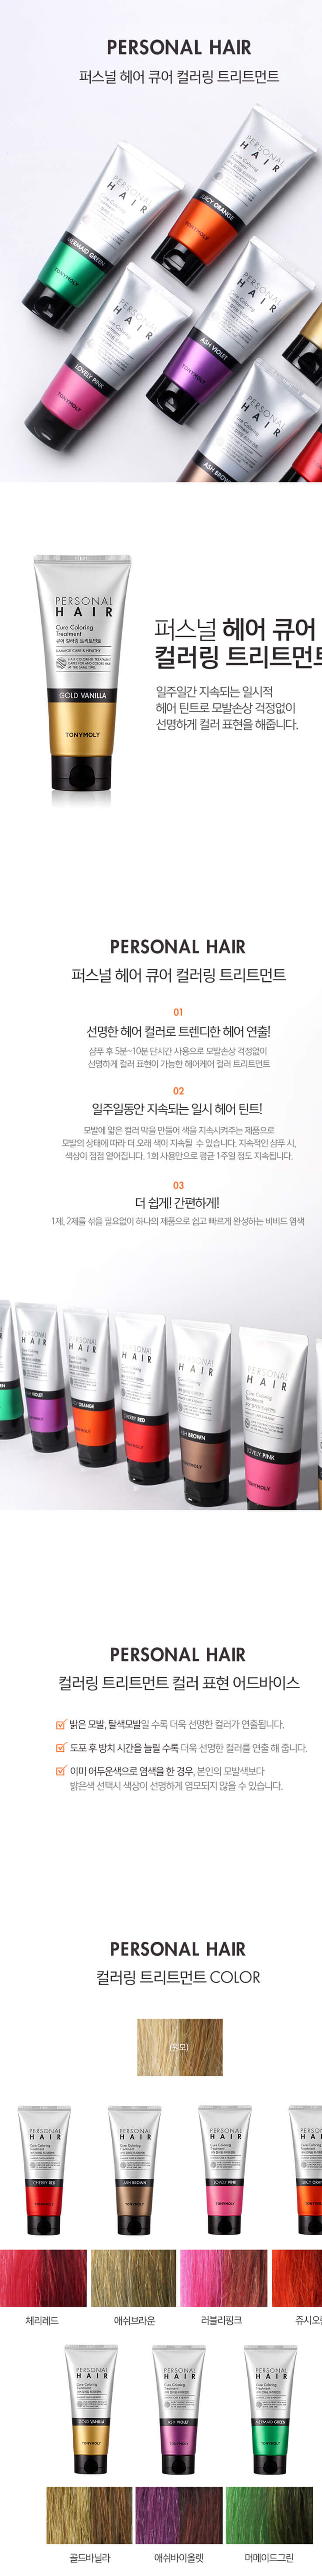 TONY MOLY Personal Hair Care Treatment [Mermaid Green]